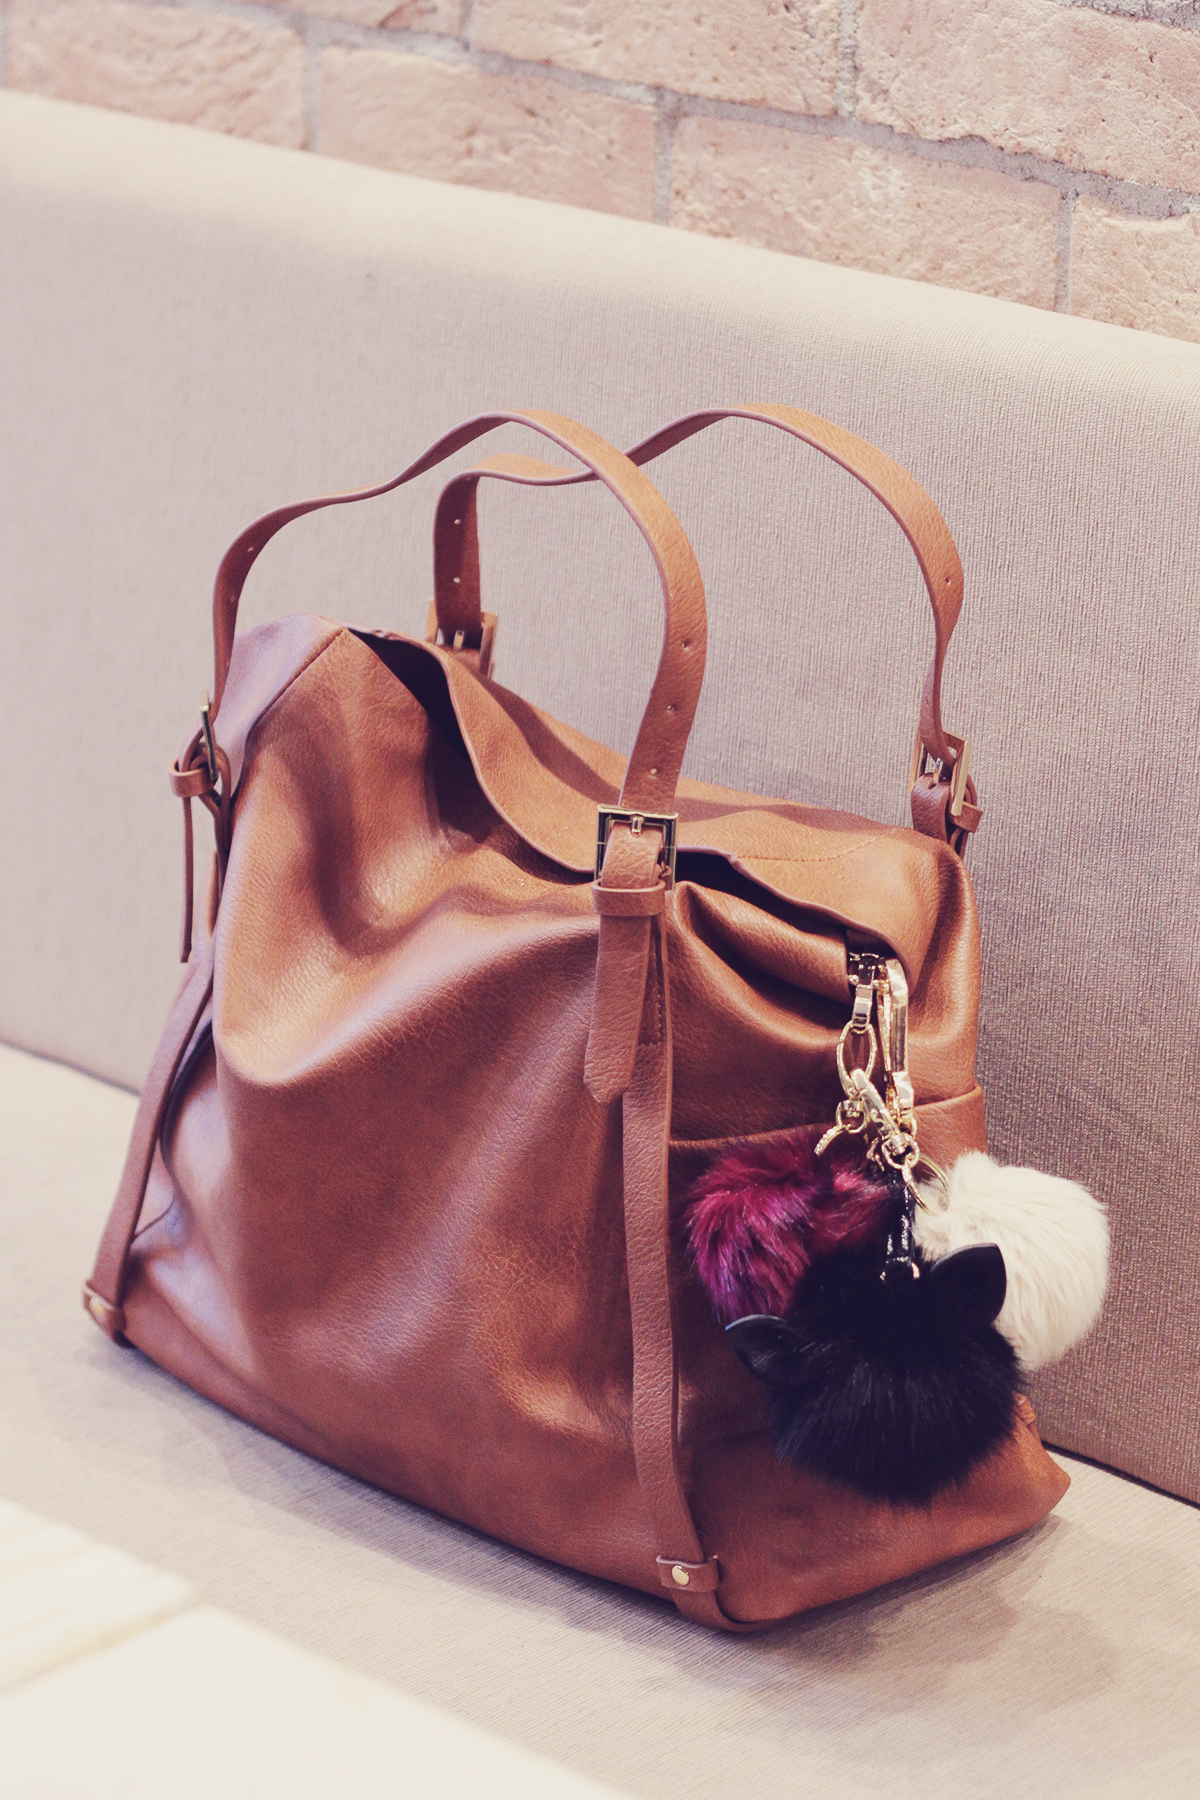 large brown tote bag with pom-poms